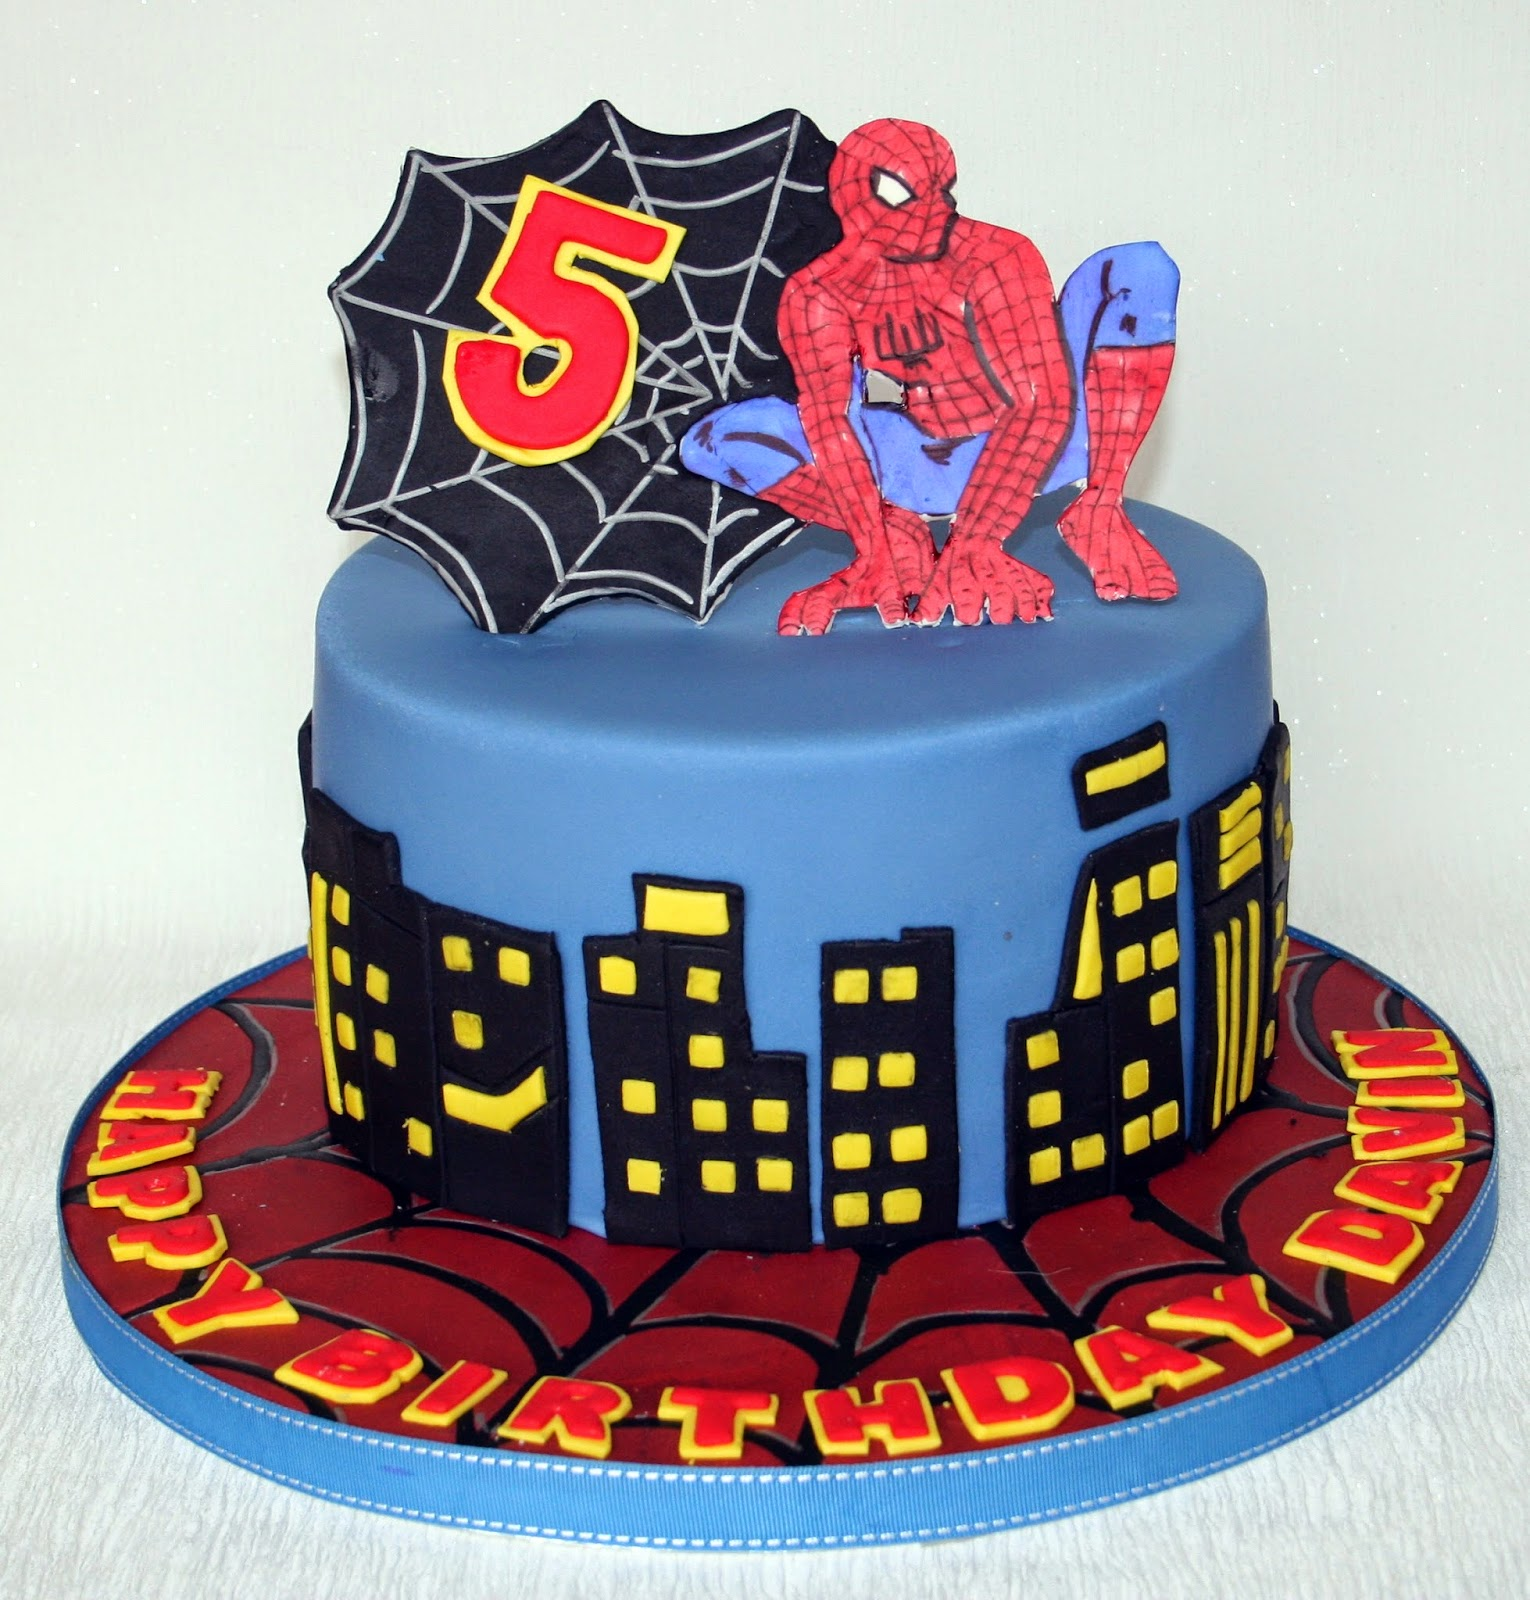 Birthday Cake Ideas Spiderman : 1000+ ideas about Cake Spiderman on Pinterest Spider Man ...